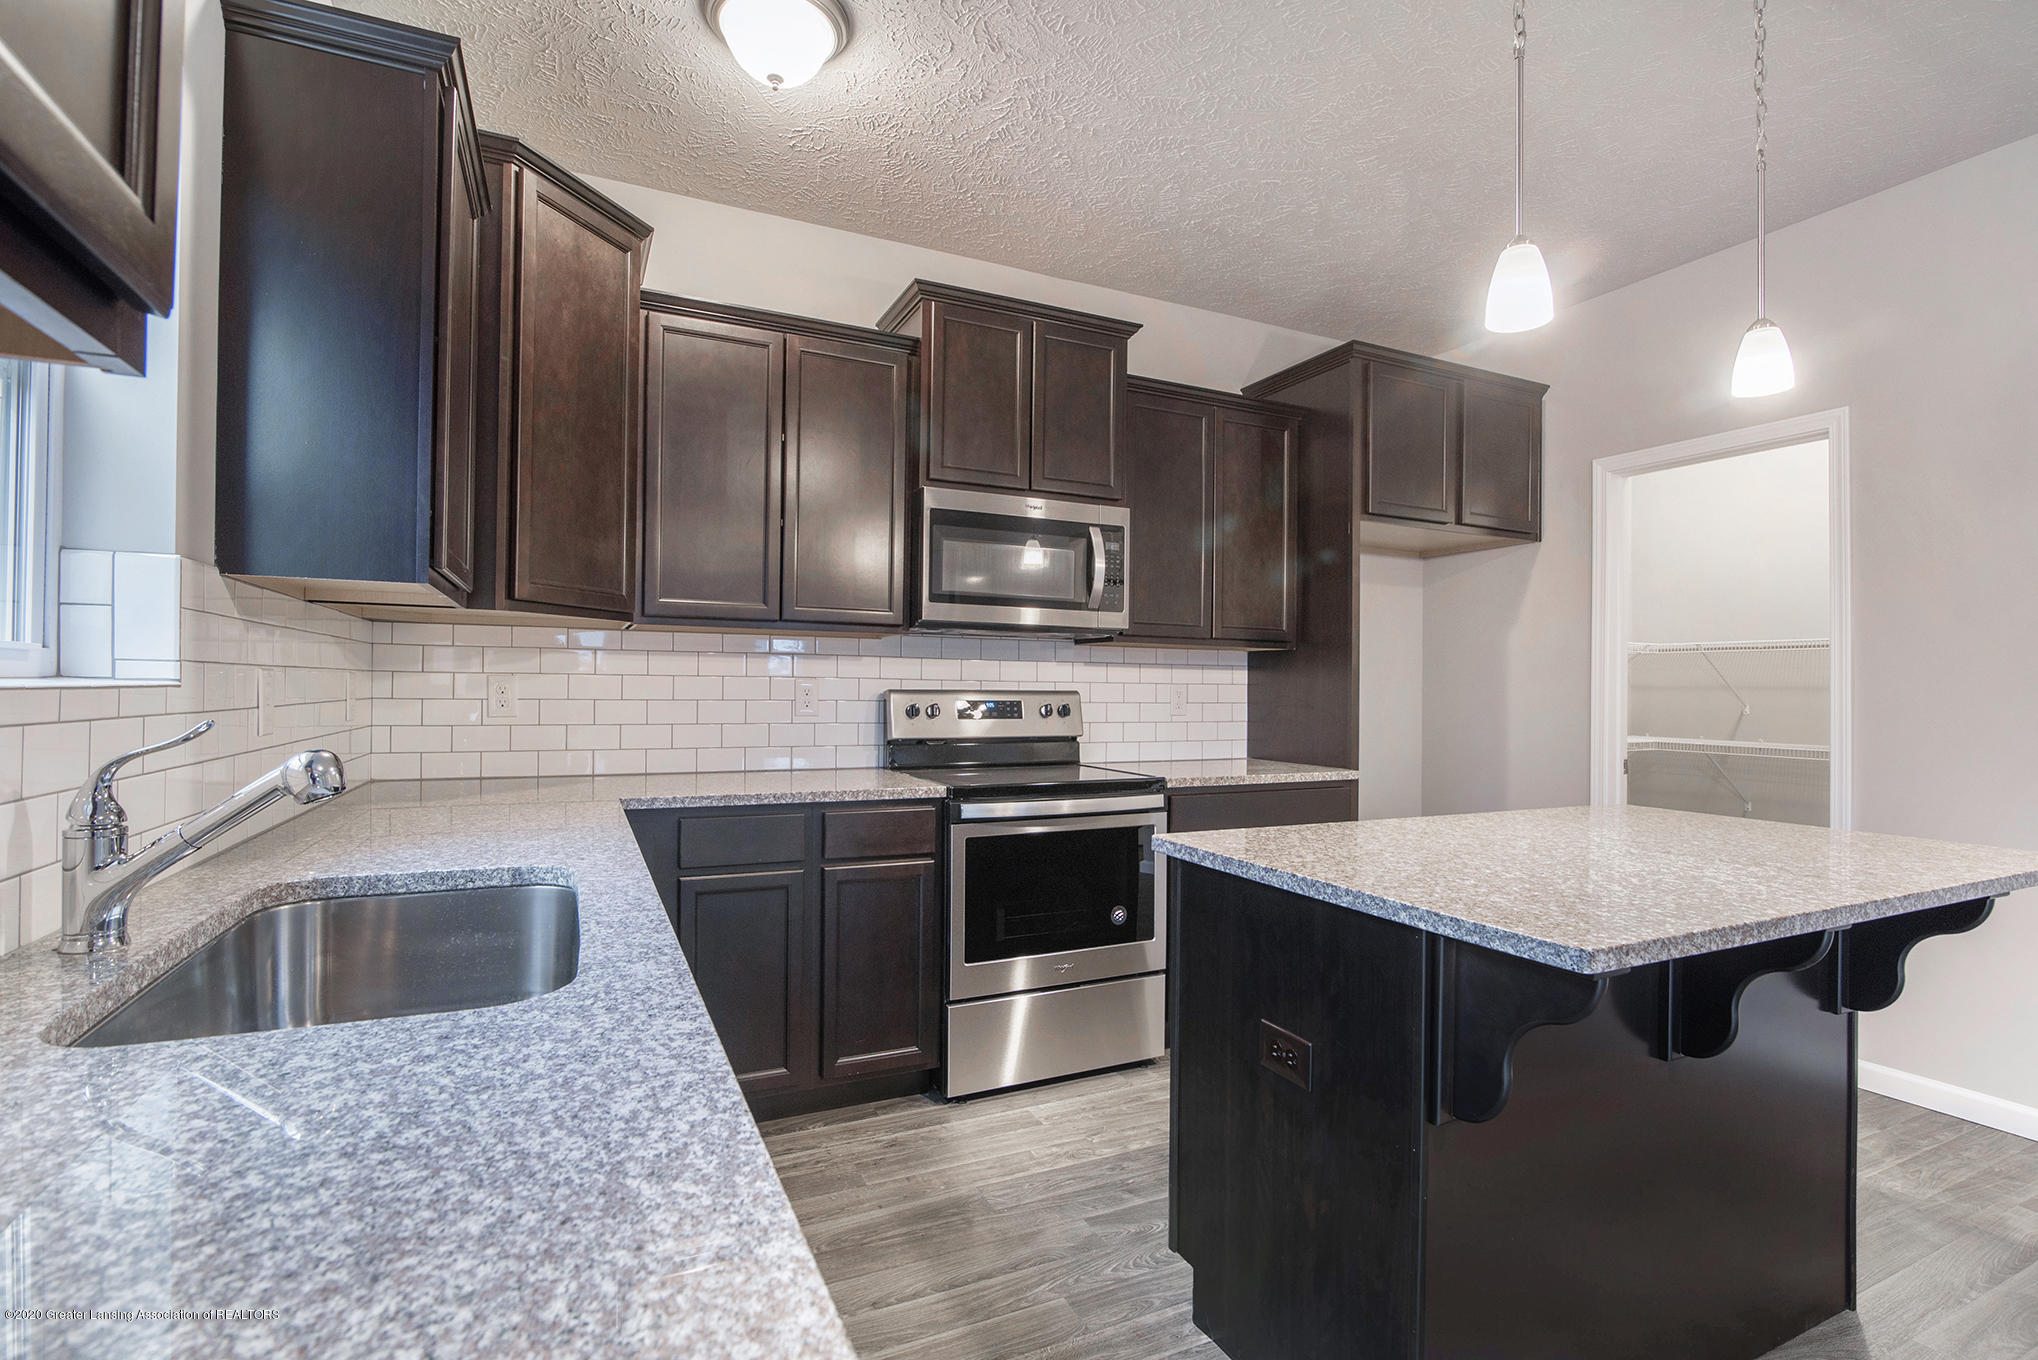 5351 Somerset Dr - GMR081-E2390-Kitchen2 - 9